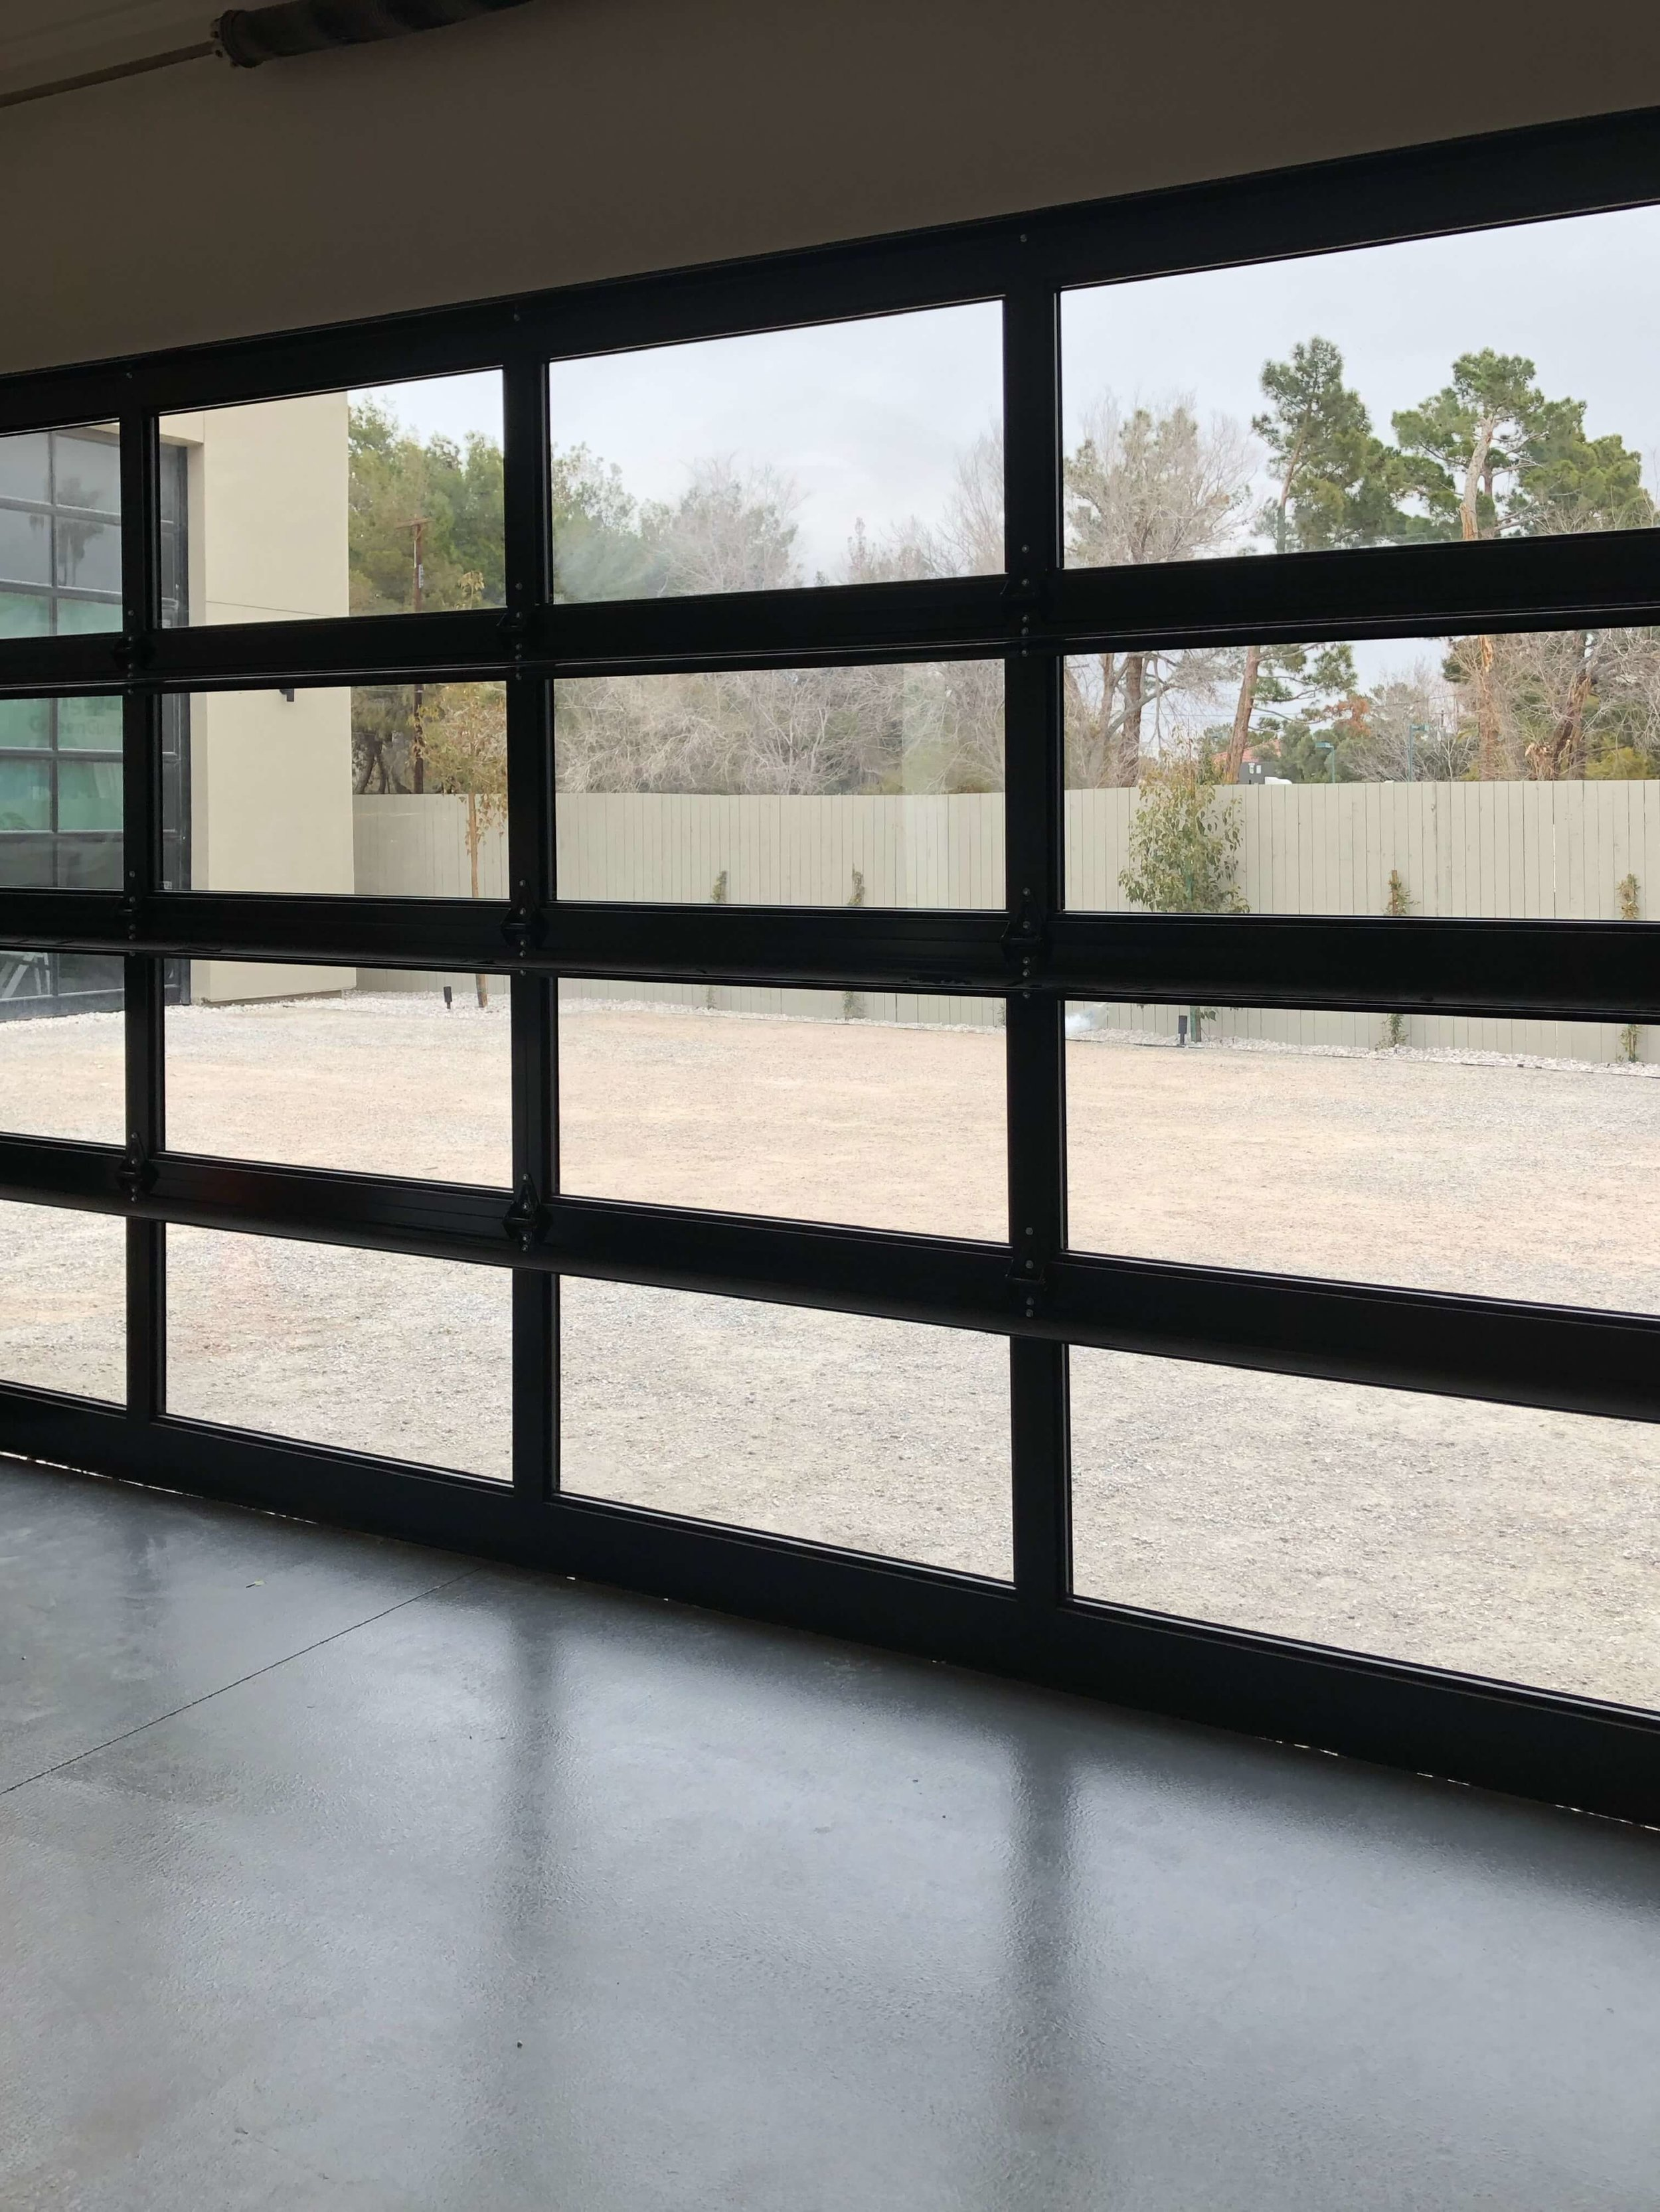 Glass garage door, mirrored on outside at The New American Remodel 2019. #garage #hometour #contemporaryhome